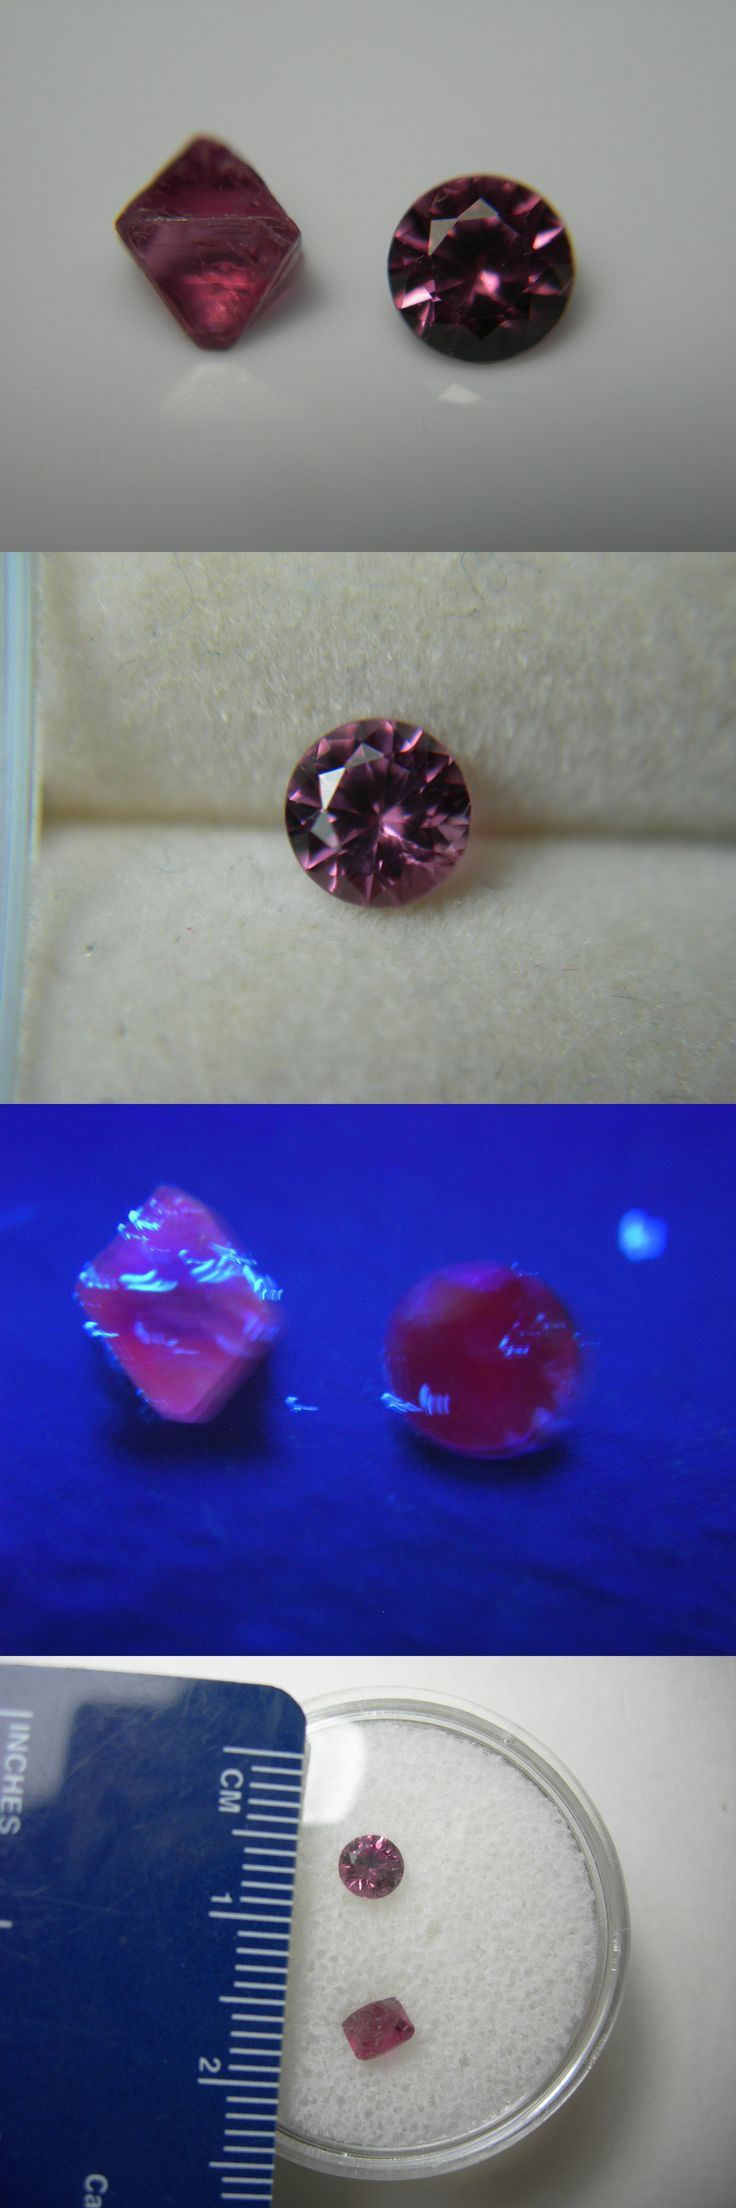 Spinel 110873: Rare Raspberry Purple Spinel Rough Cut Set Gem Mogok Burma Crystal Fluorescent A -> BUY IT NOW ONLY: $49.49 on eBay!